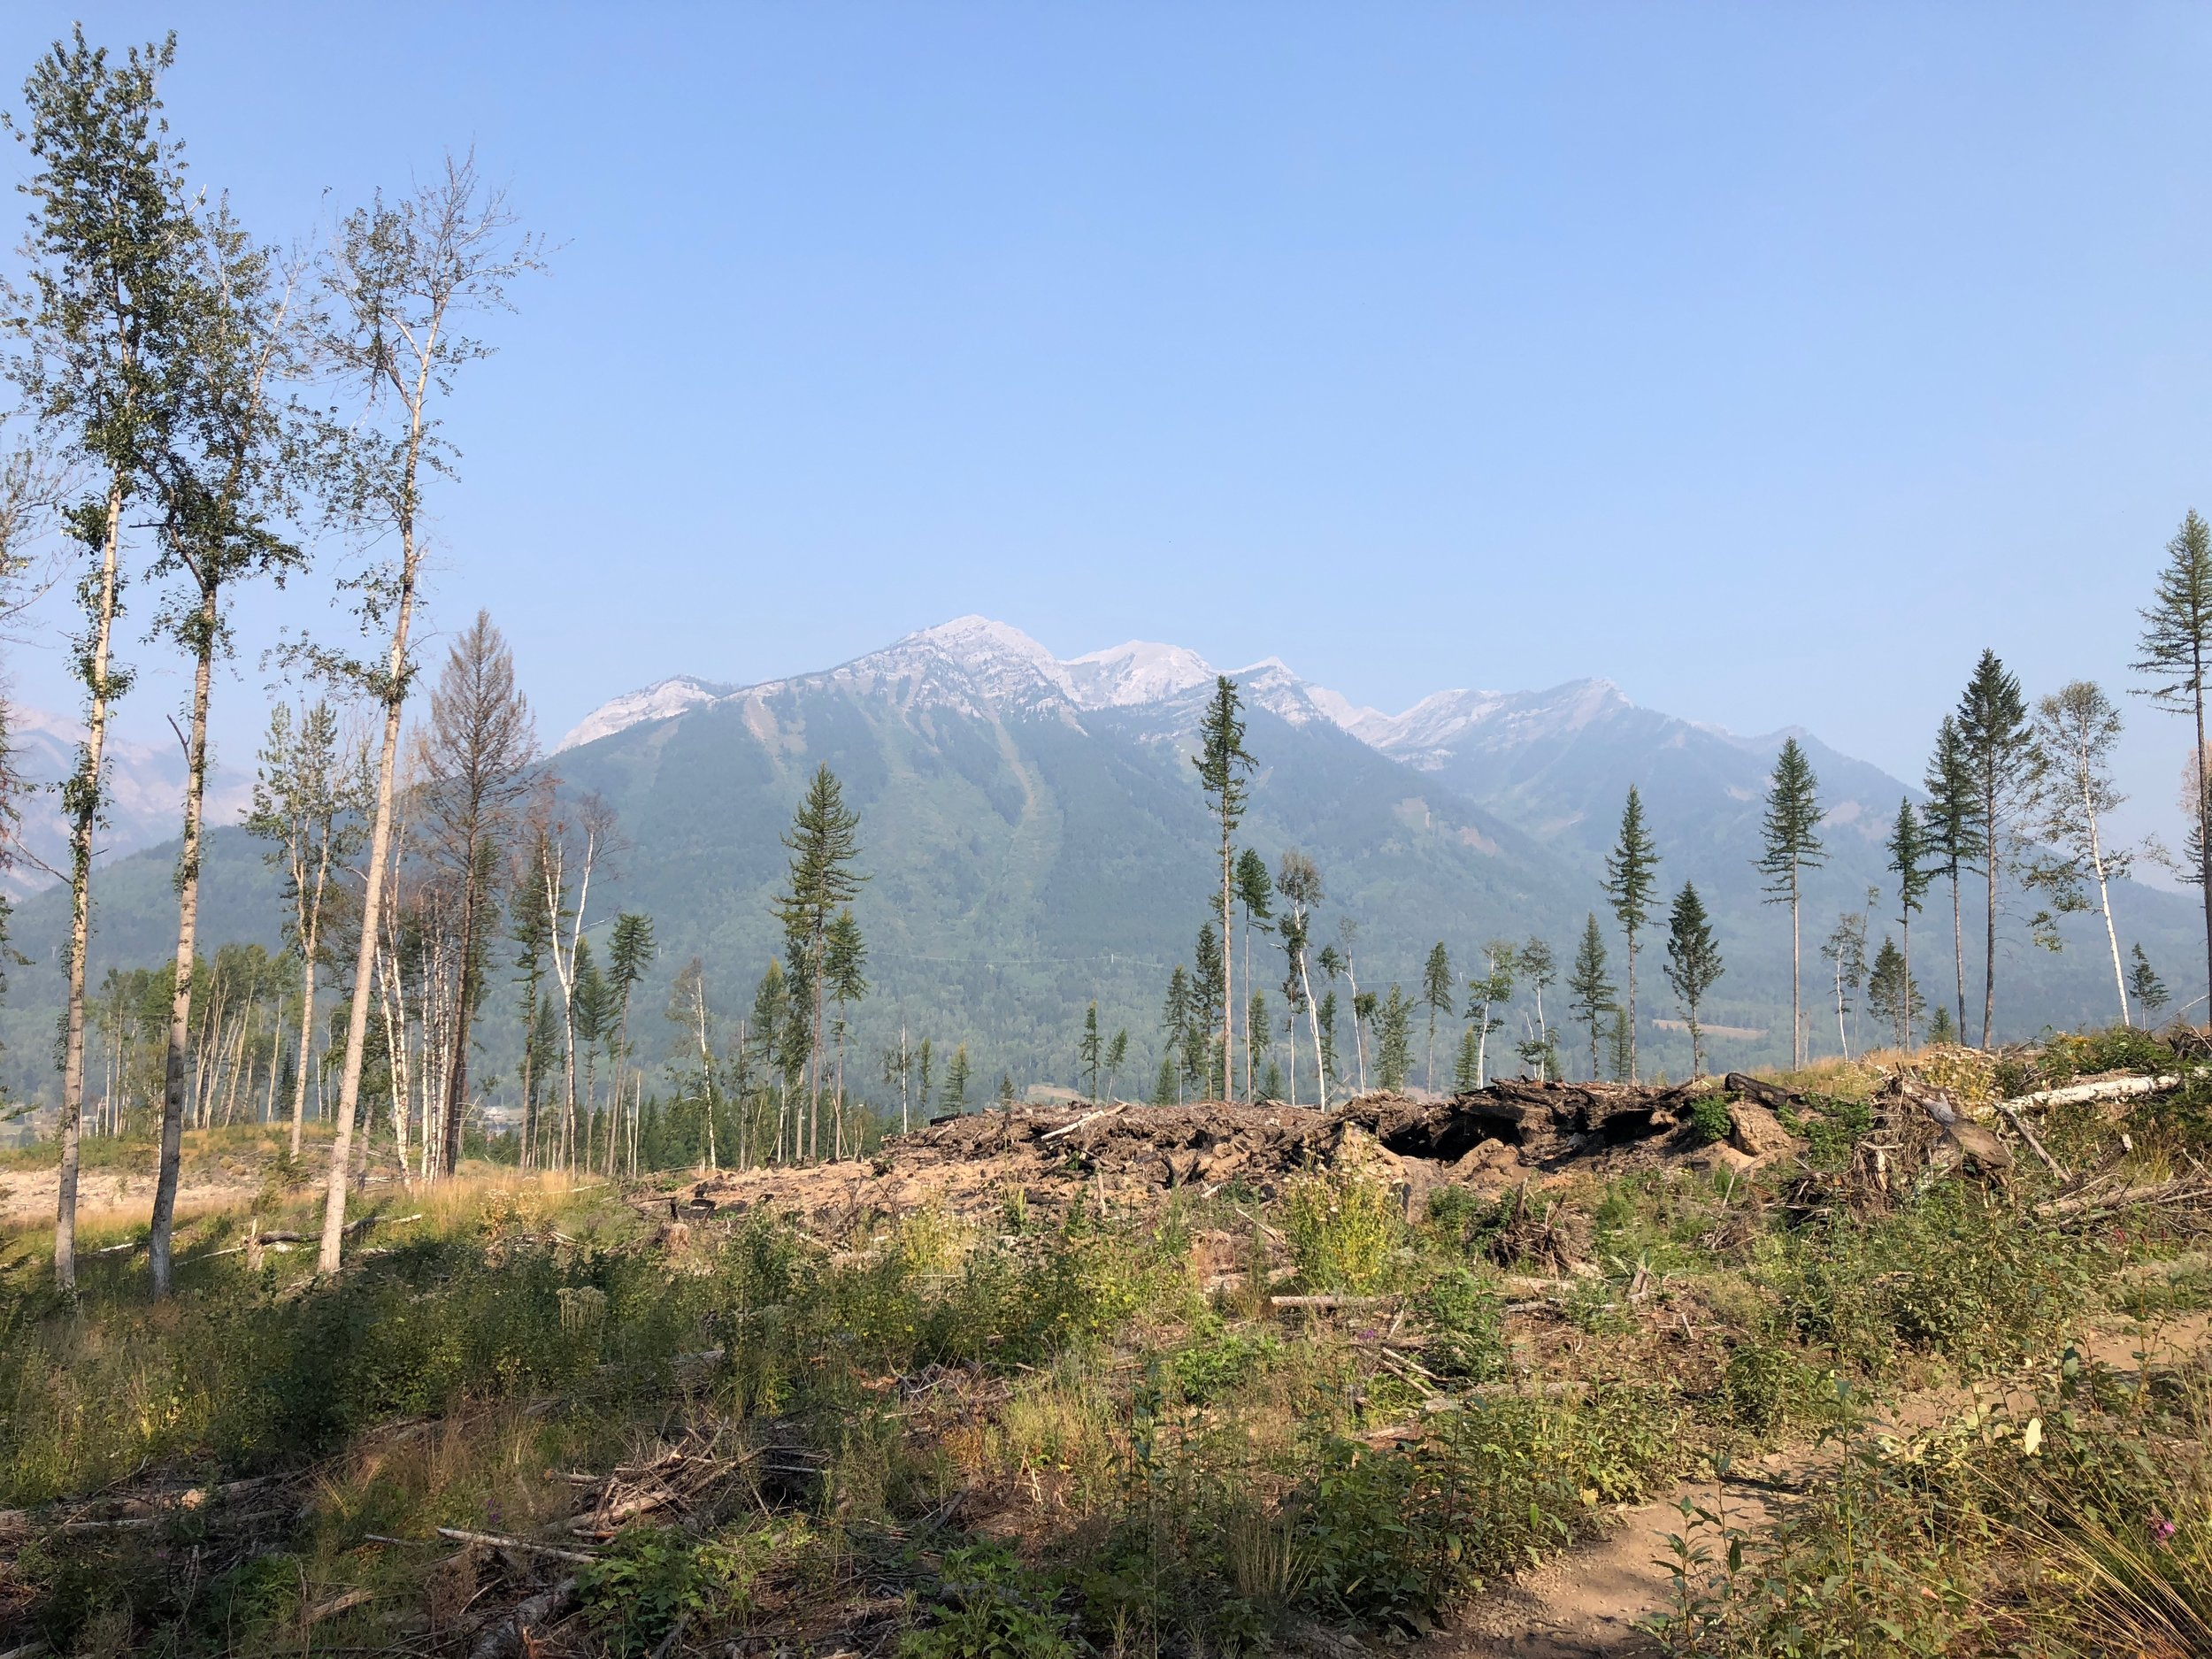 A view of the mountains from a trail in Fernie